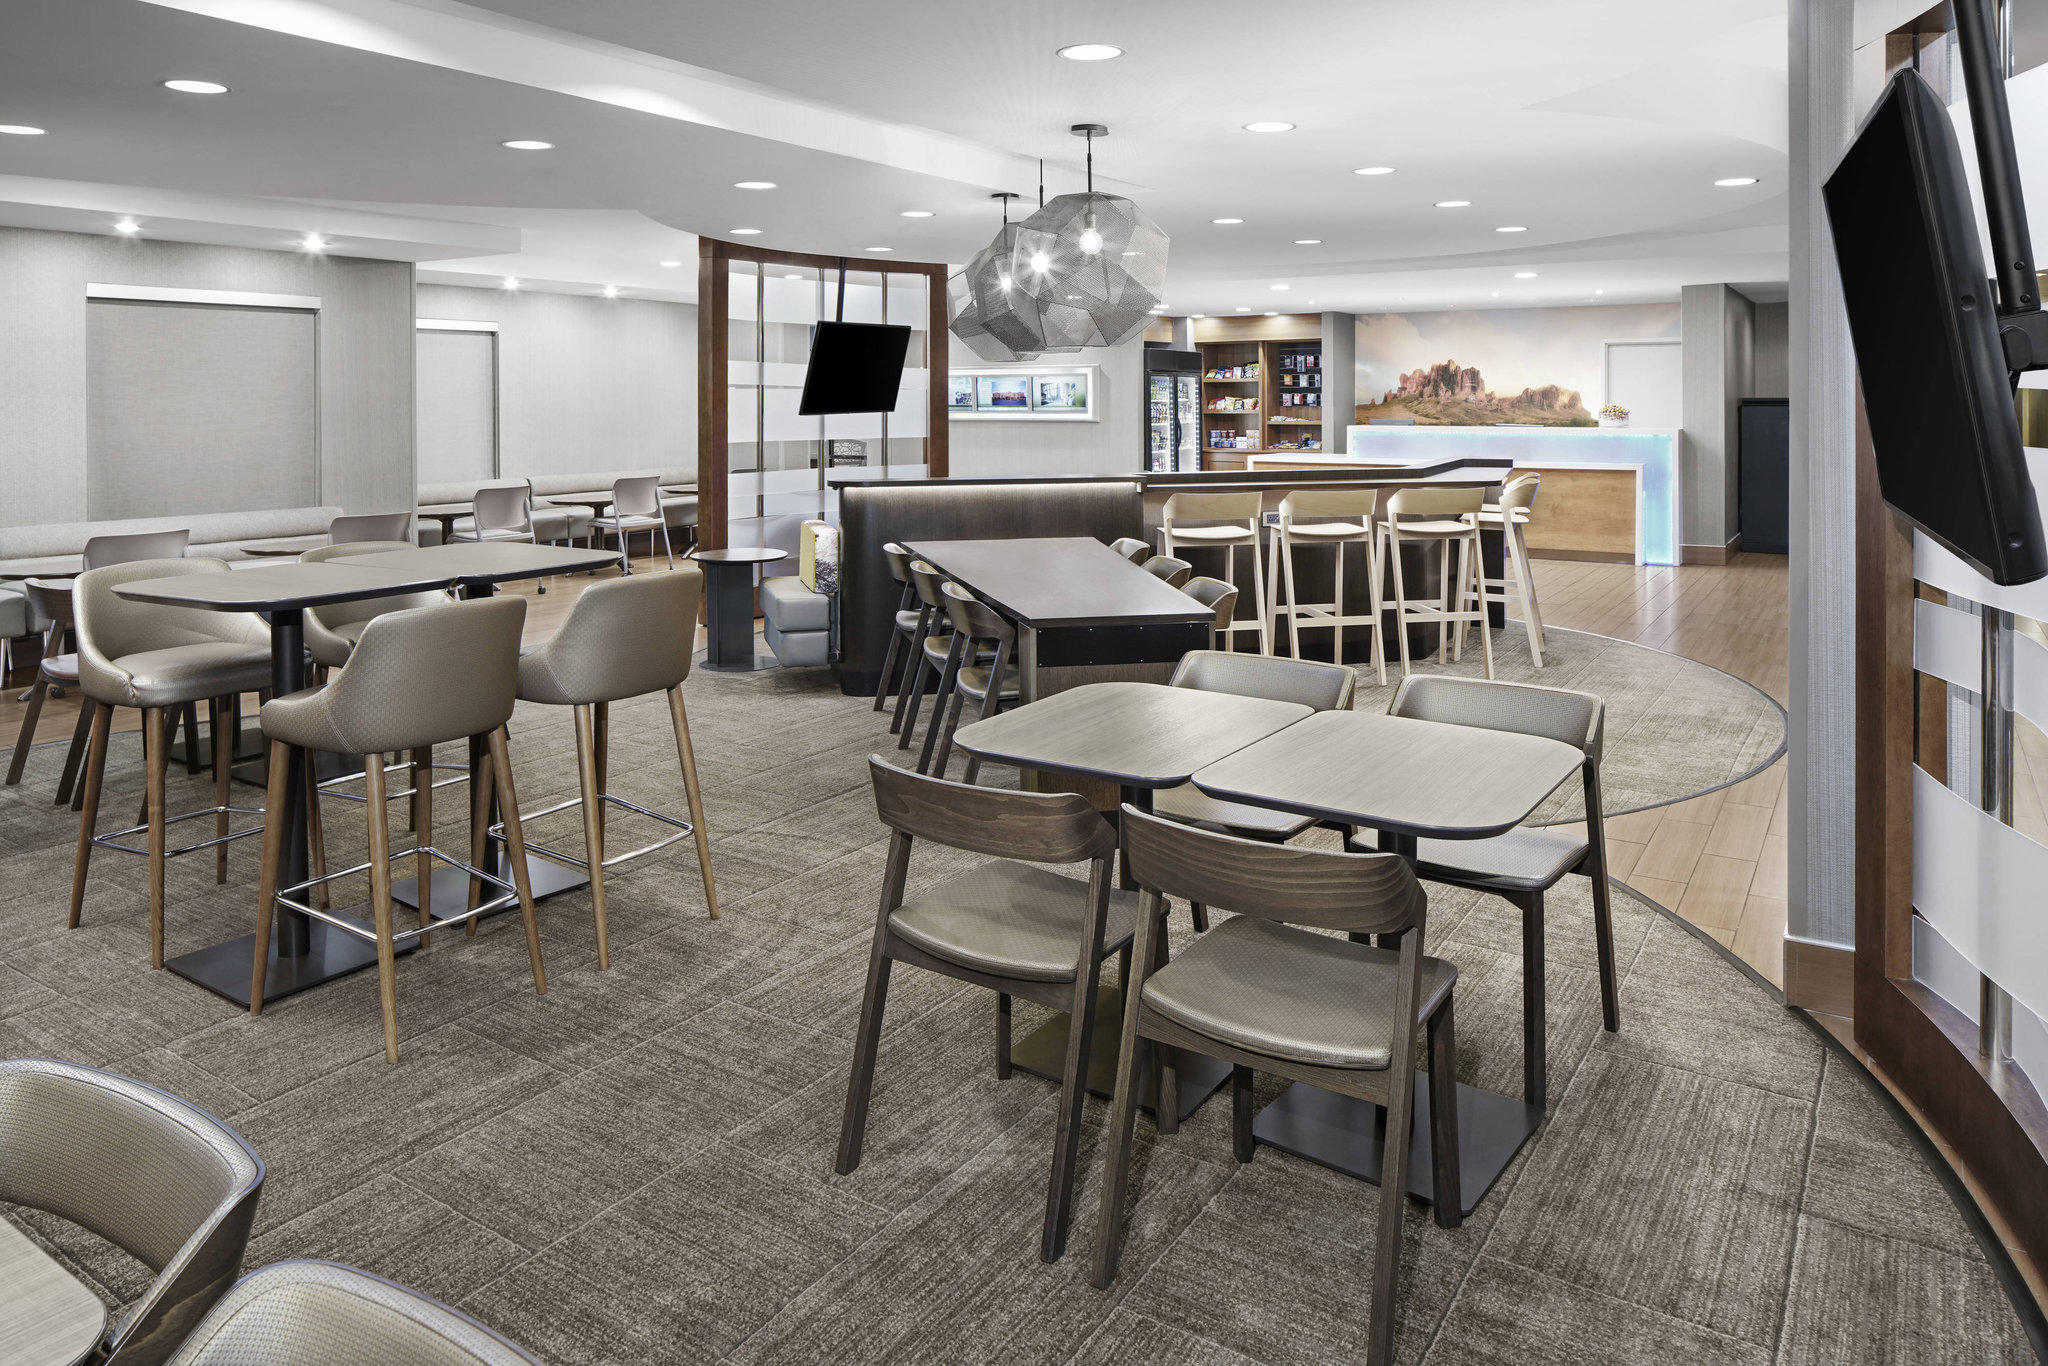 SpringHill Suites by Marriott Scottsdale North